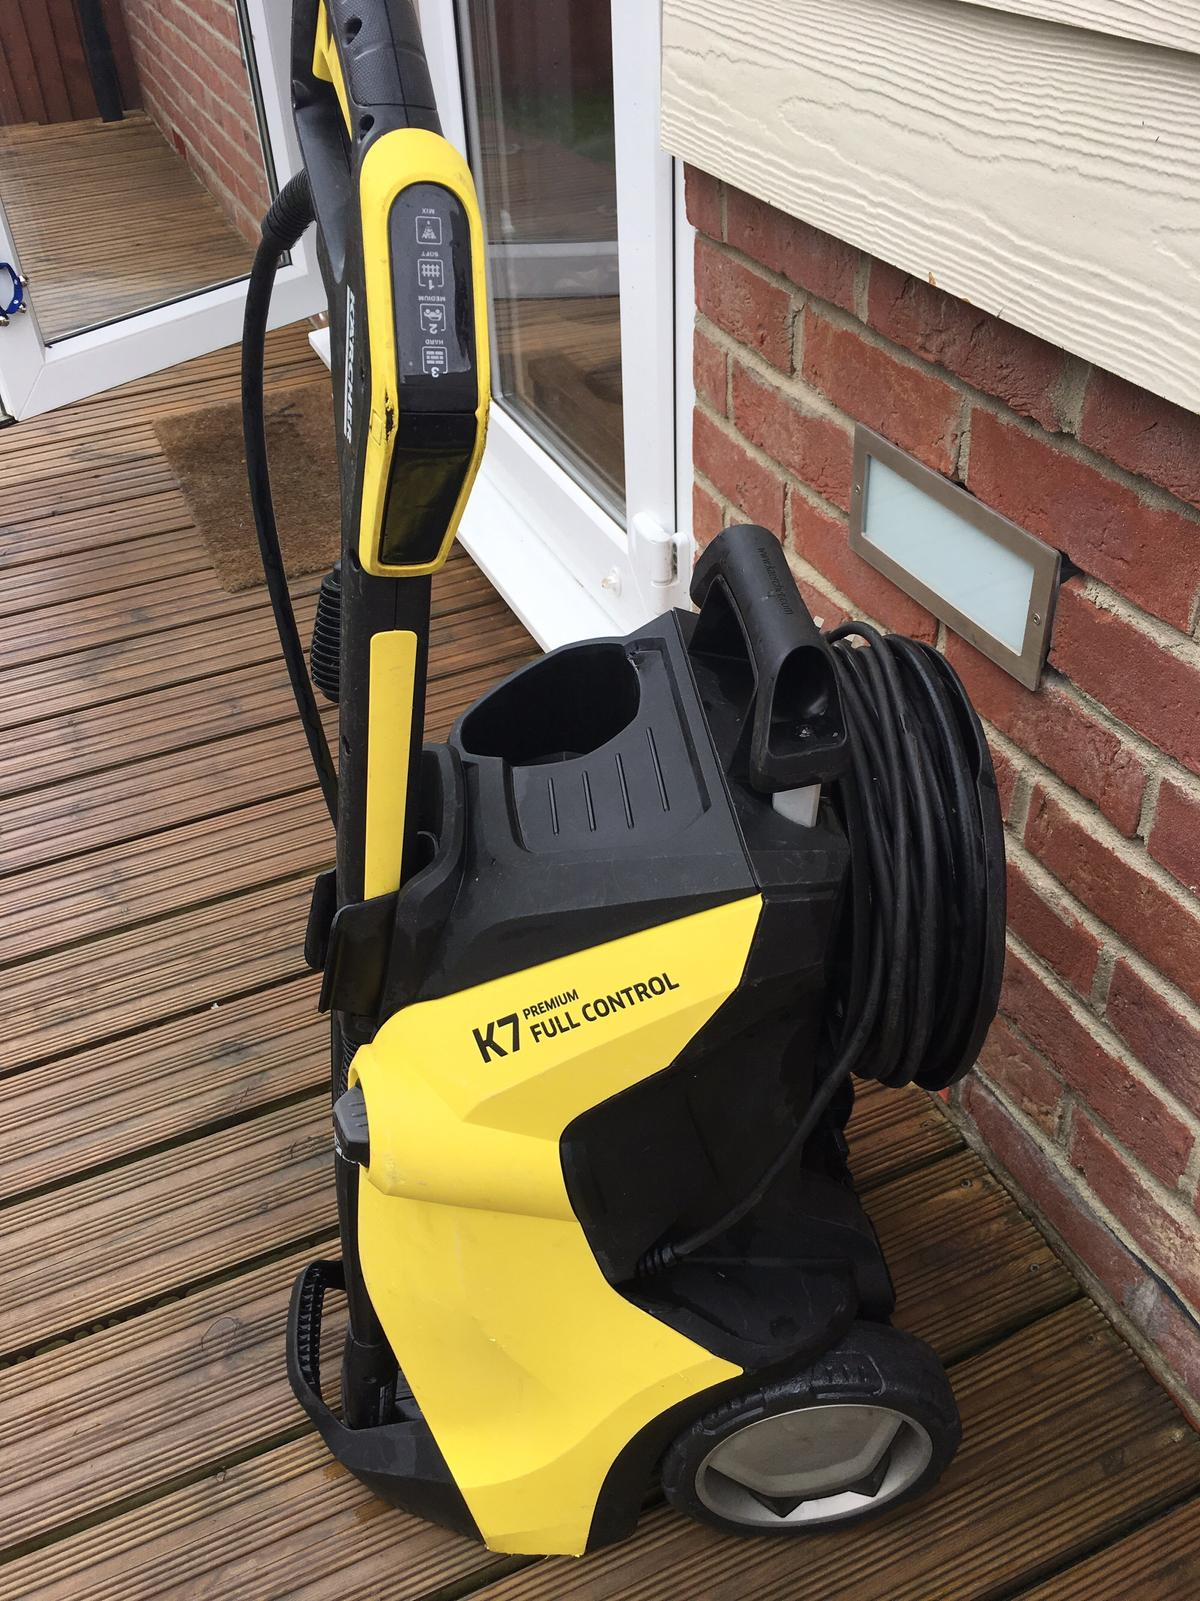 Karcher K7 Premium Full Control Home Karcher K7 Premium Full Control Home Kit In So50 Eastleigh For